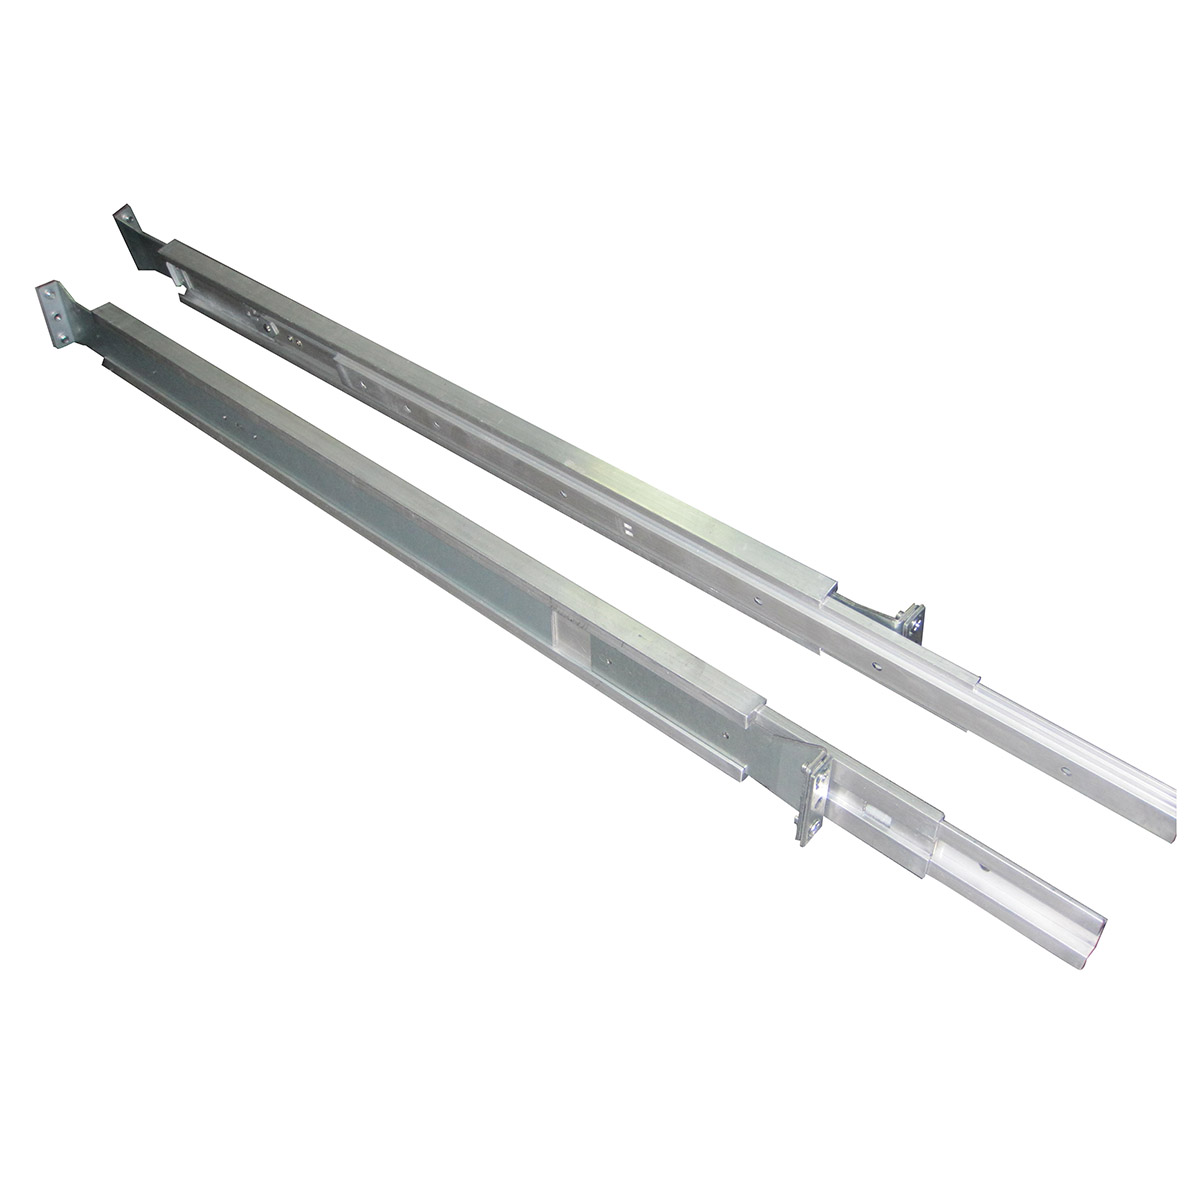 TGC Chassis Accessory Metal Slide Rails 600mm for TGC 1U Chassis